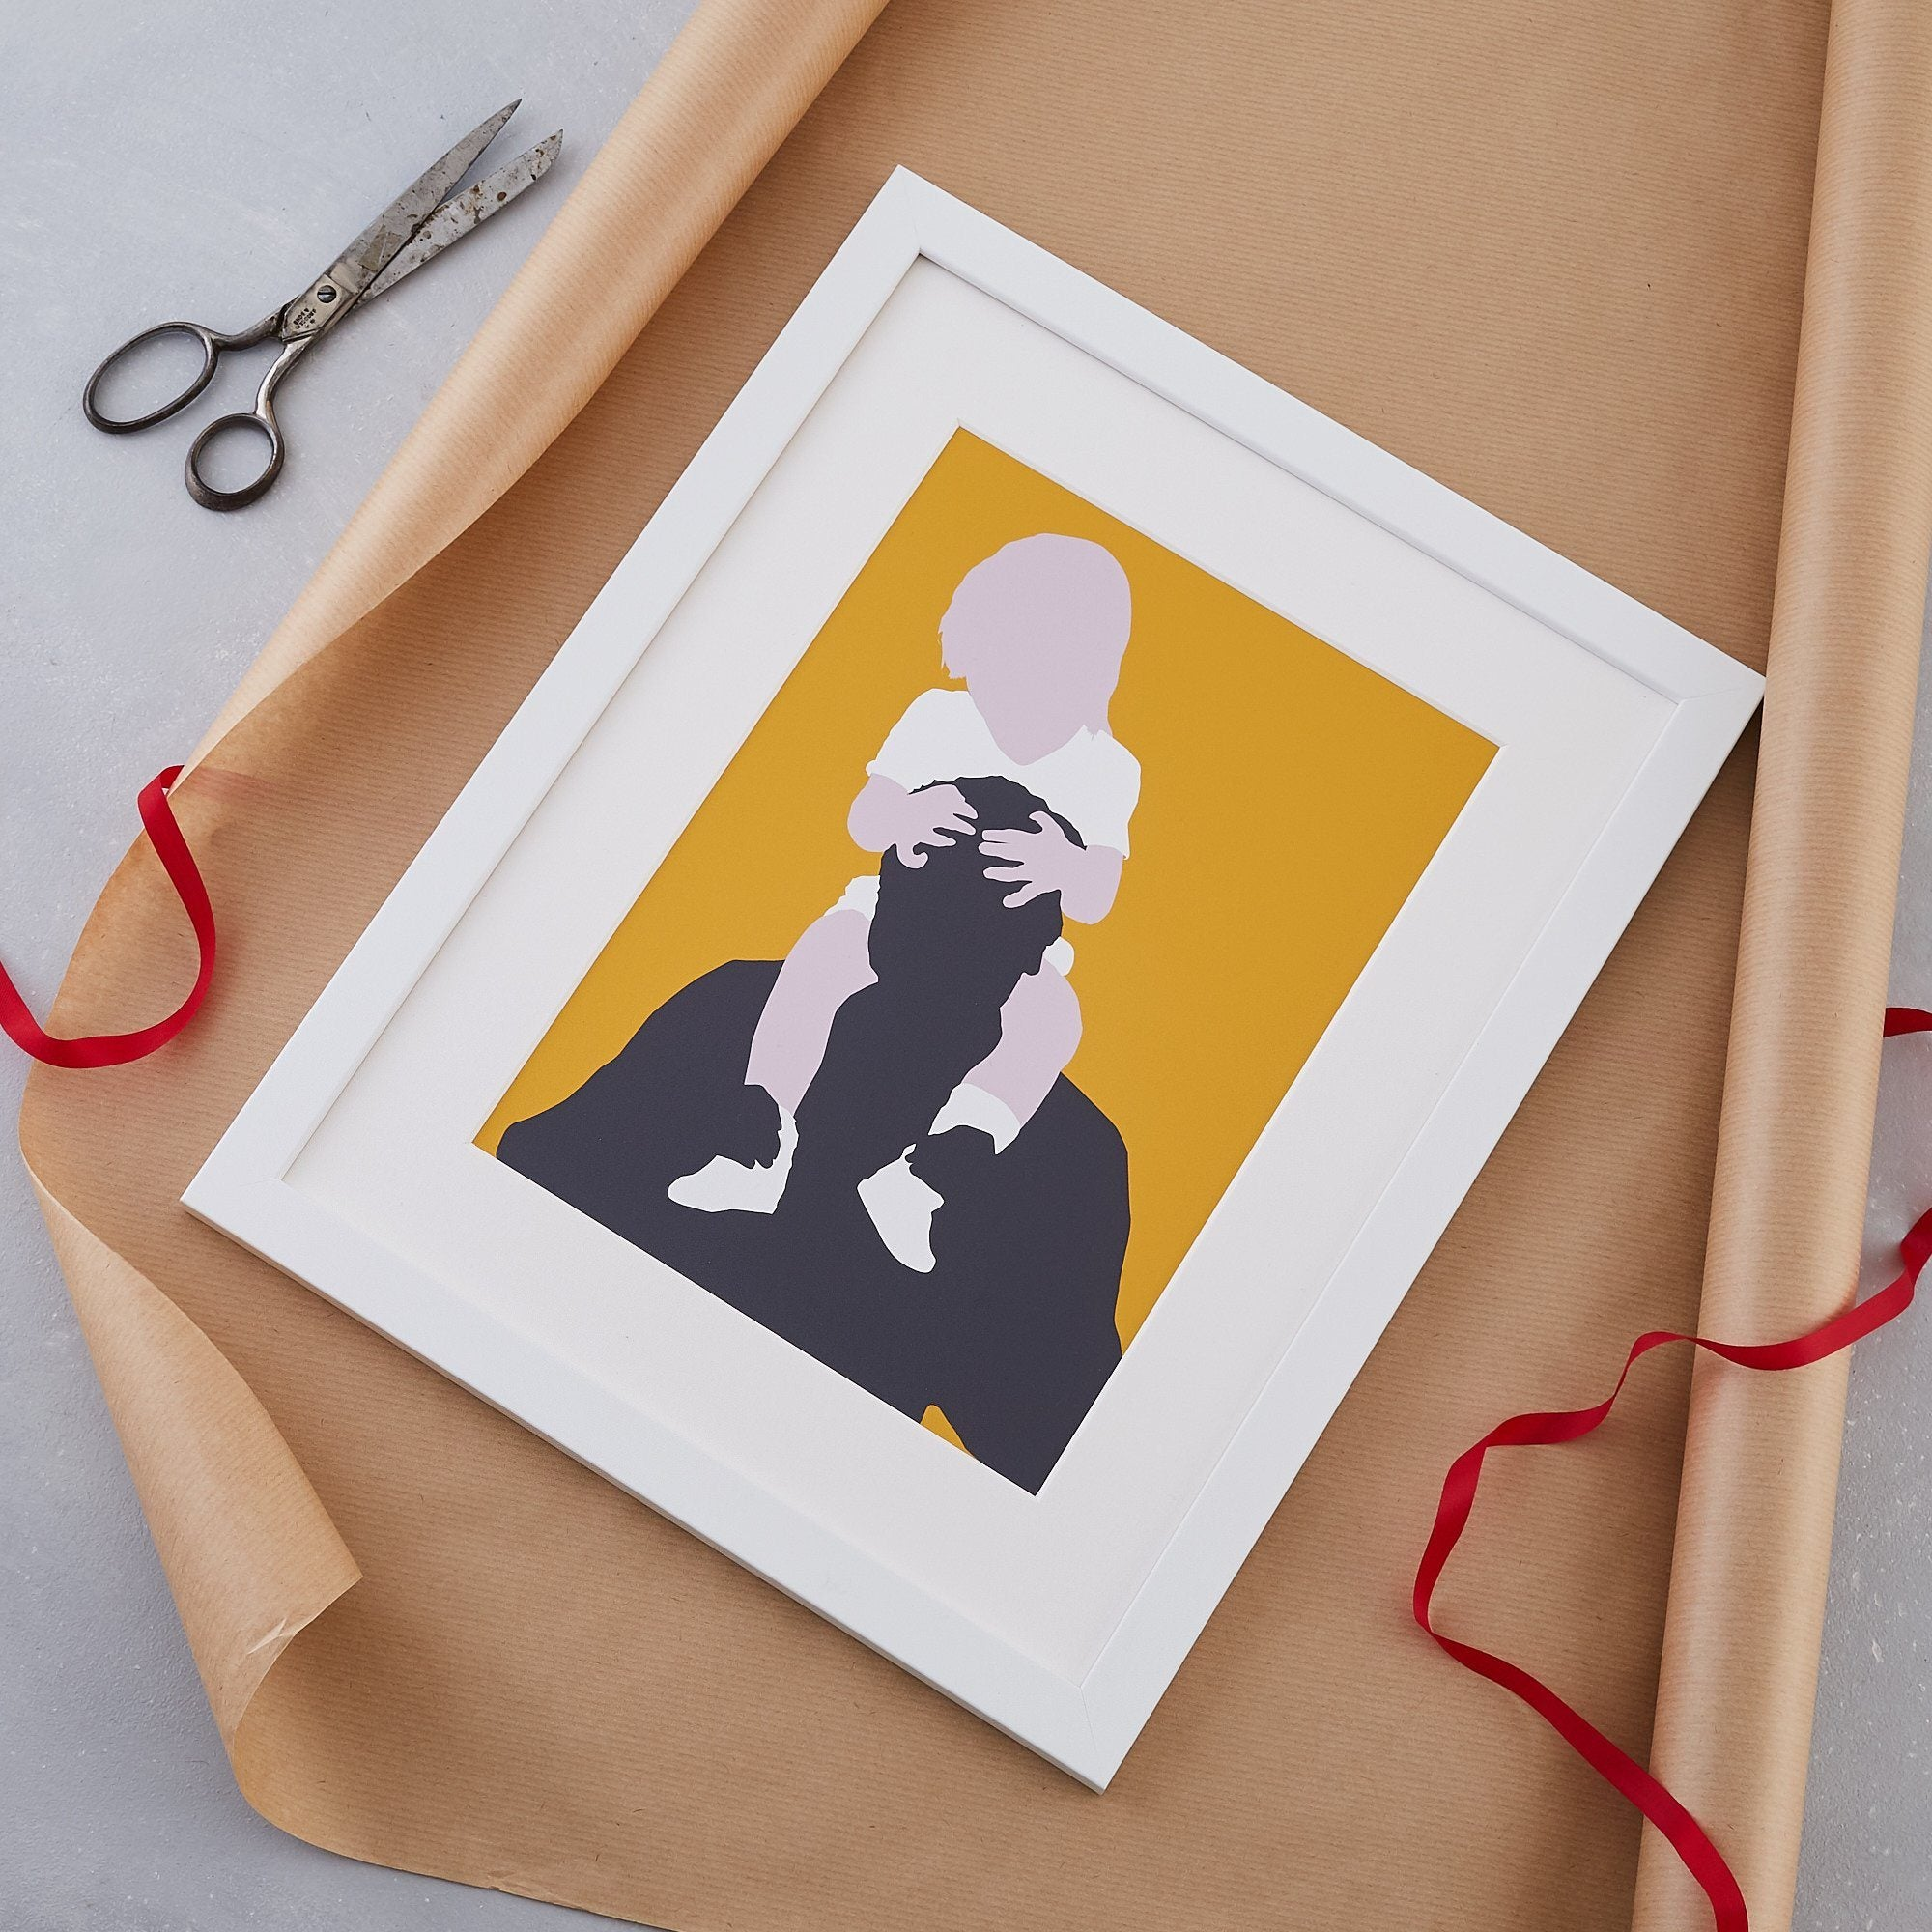 Family silhouette print. Modern family photograph reinterpreted for Fathers Day